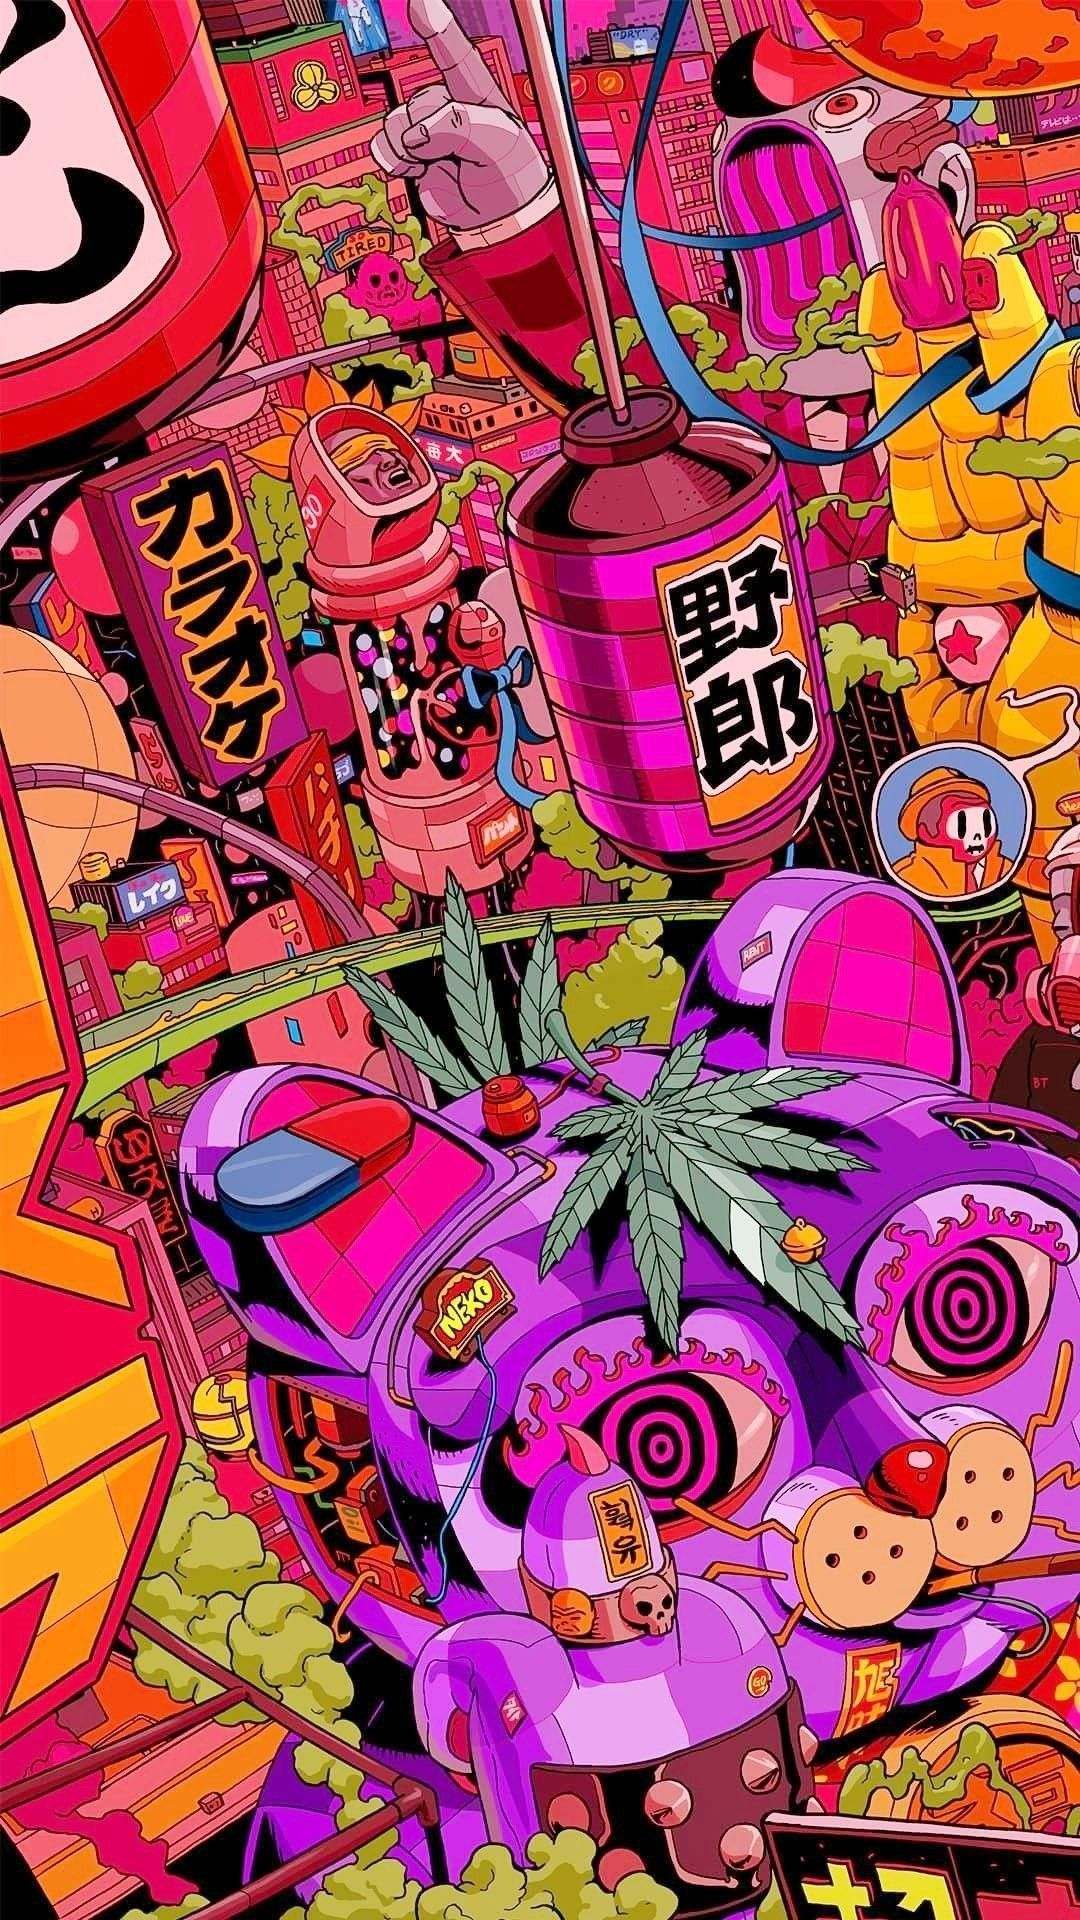 Stoner Trippy Wallpaper Android Obtain Trippy Wallpaper Graffiti Wallpaper Pop Art Wallpaper